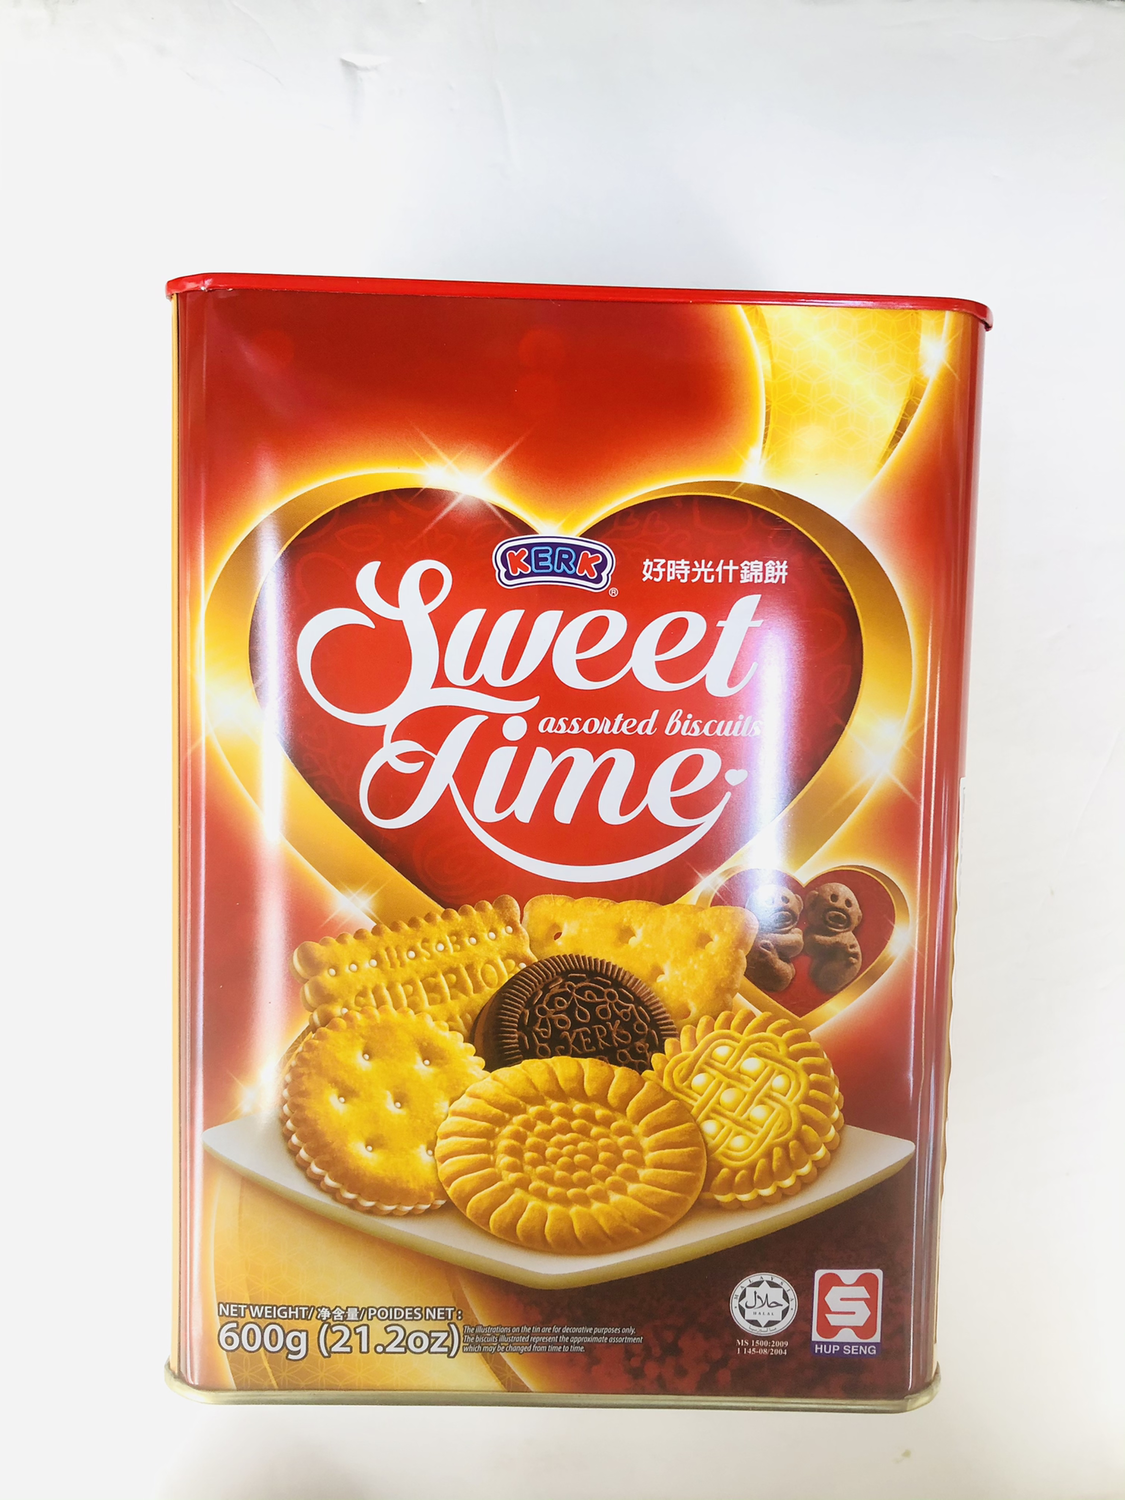 KERK 甜蜜时光什锦饼 Sweet Time Assorted Biscuits 600g(21.2oz)